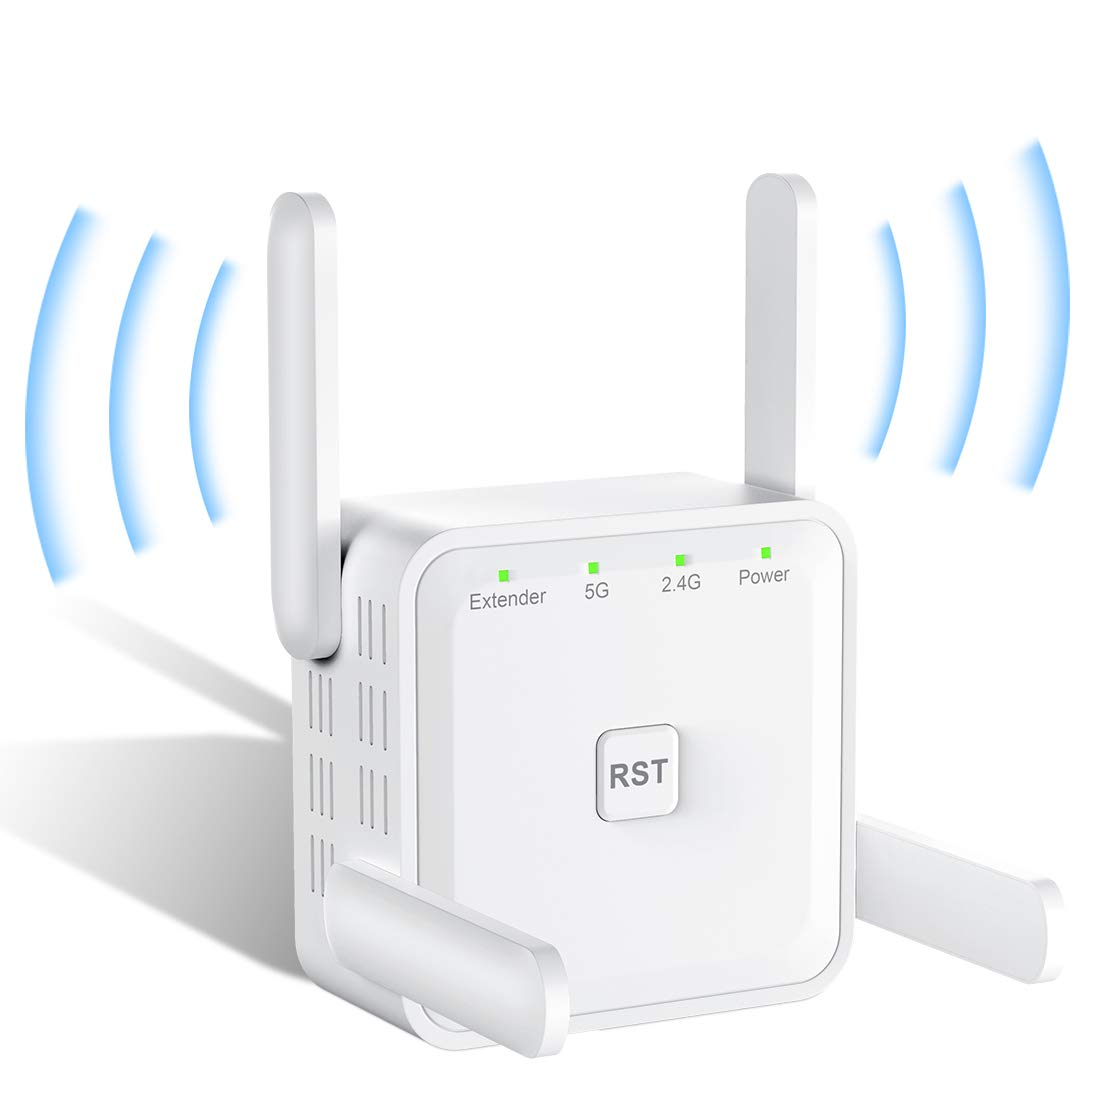 1200Mbps Wireless WiFi Amplifier rockspace WiFi Repeater Access Point Mode and WPS 5G and 2.4G Dual Band WiFi Booster with 1 Ethernet Port WiFi Extender for Home of 120 ㎡ with UK Plug